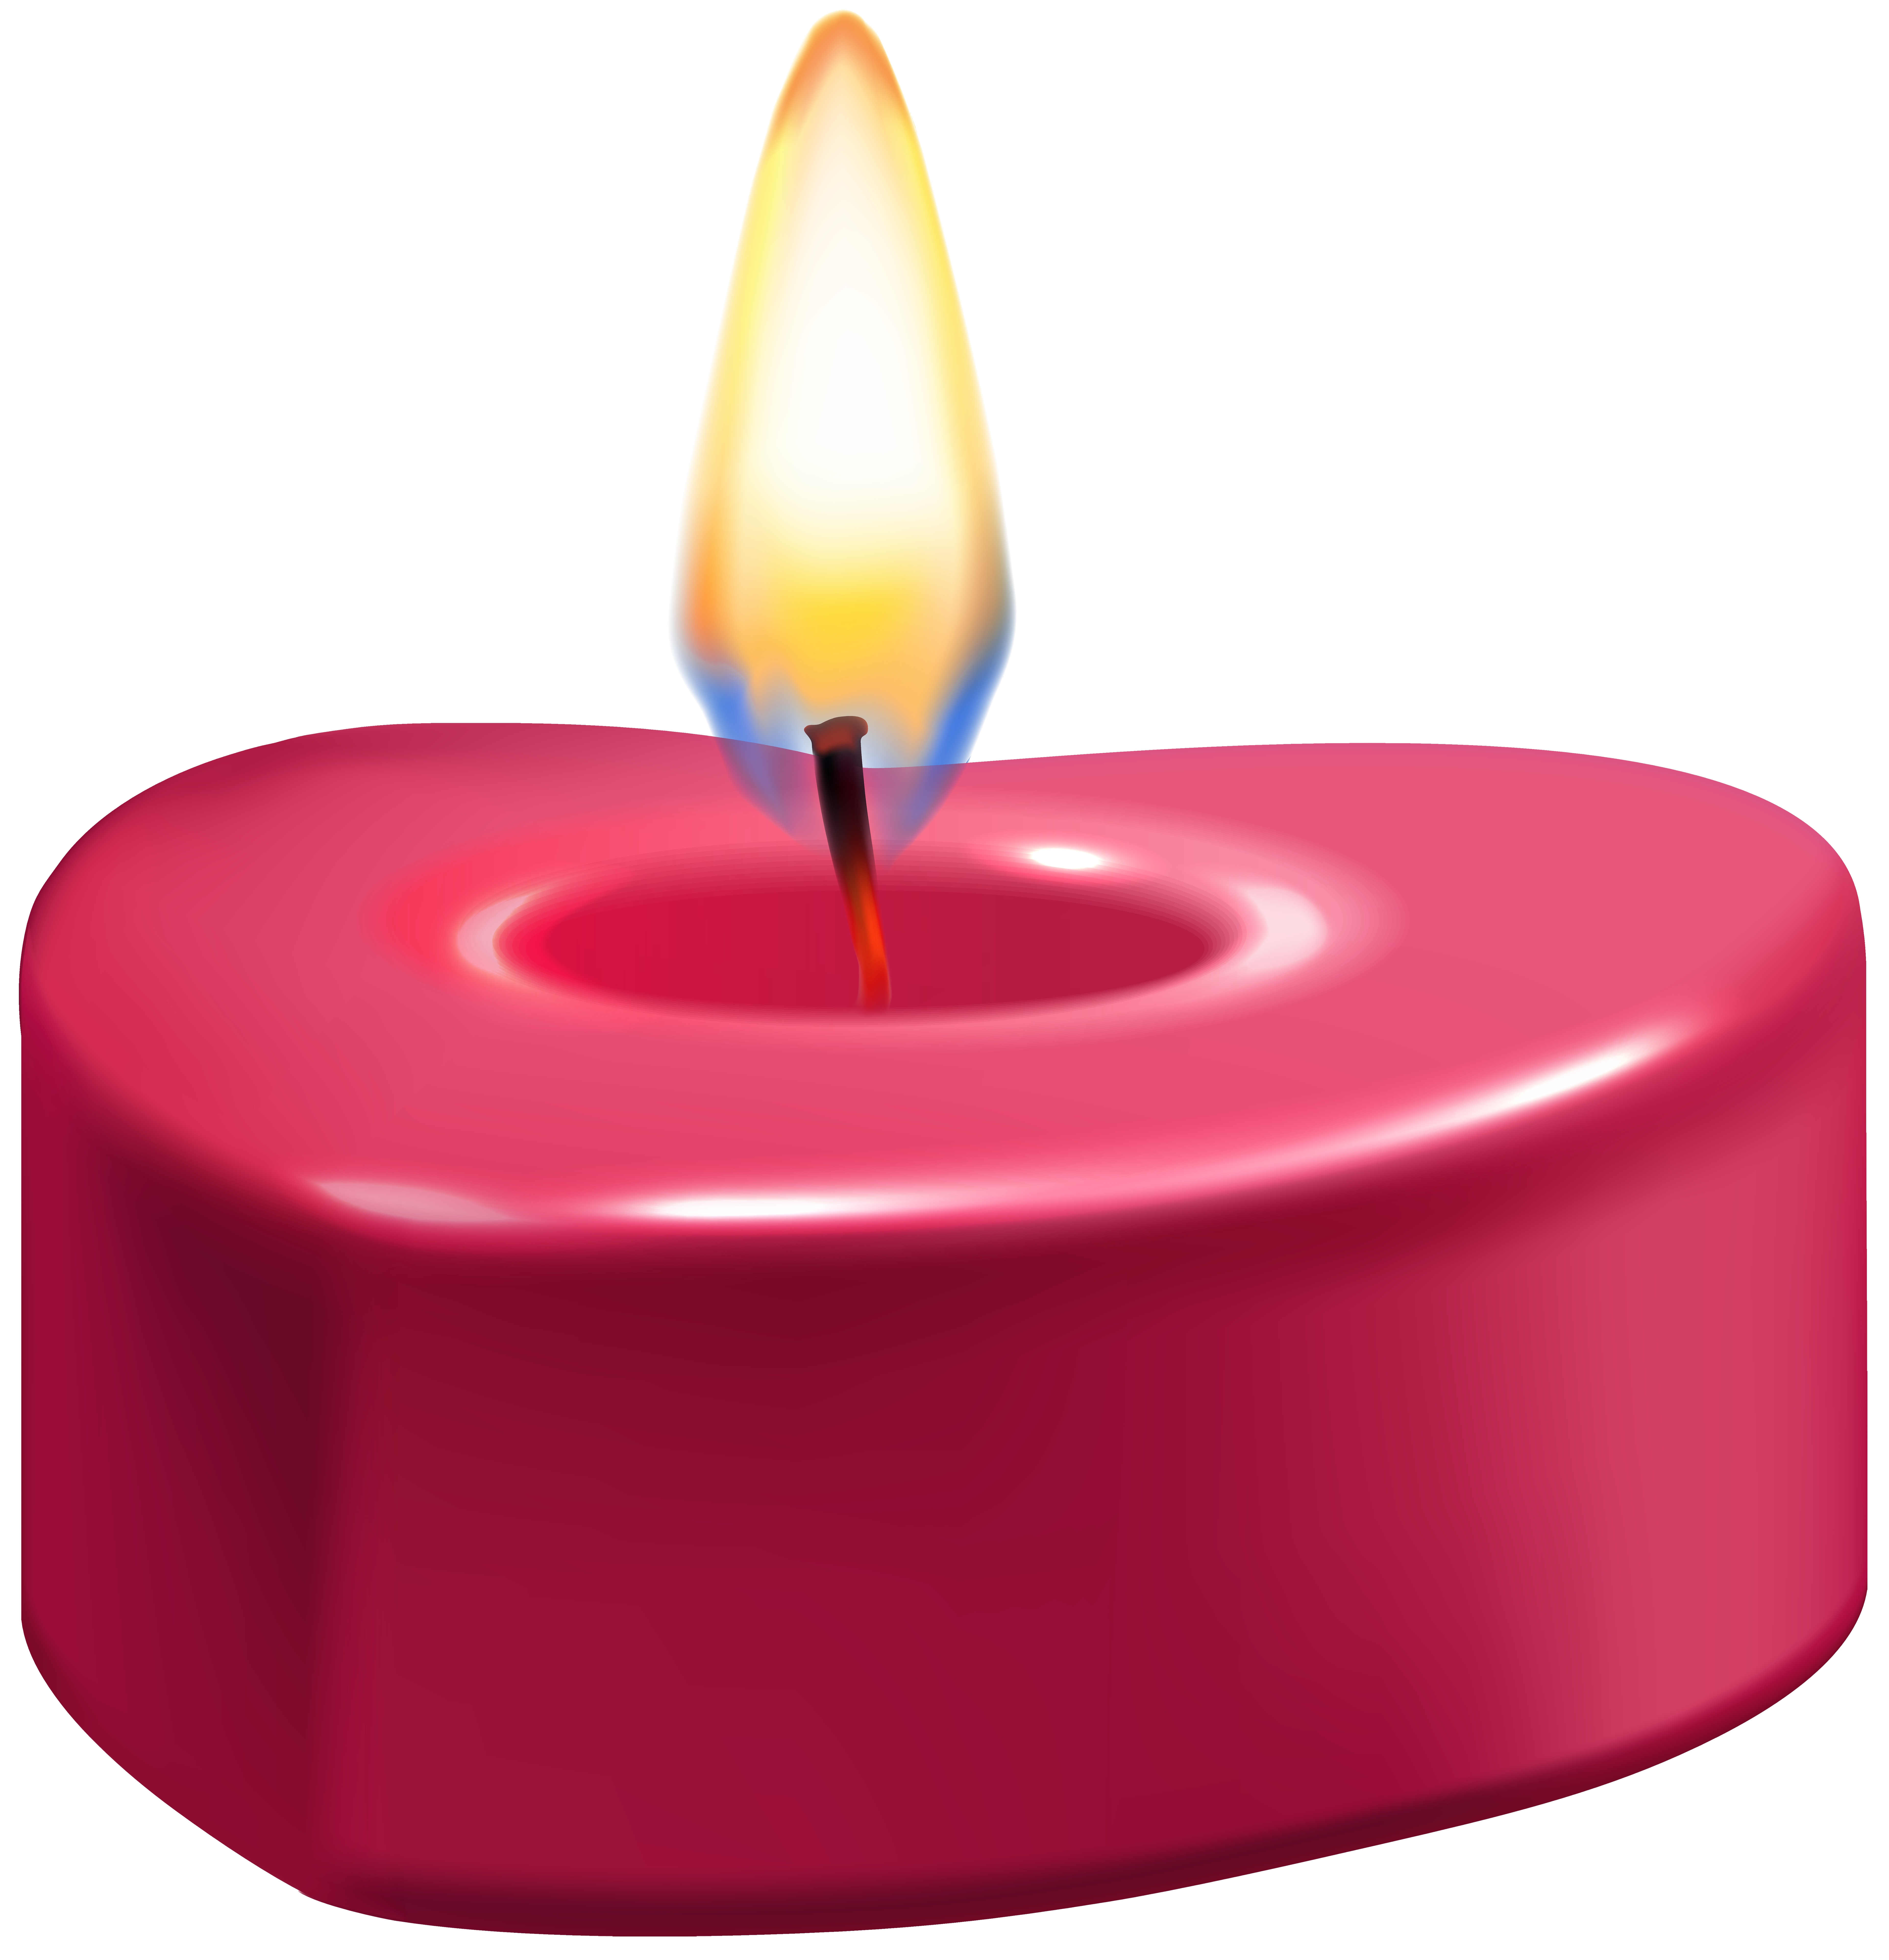 Candles clipart png. Heart candle clip art